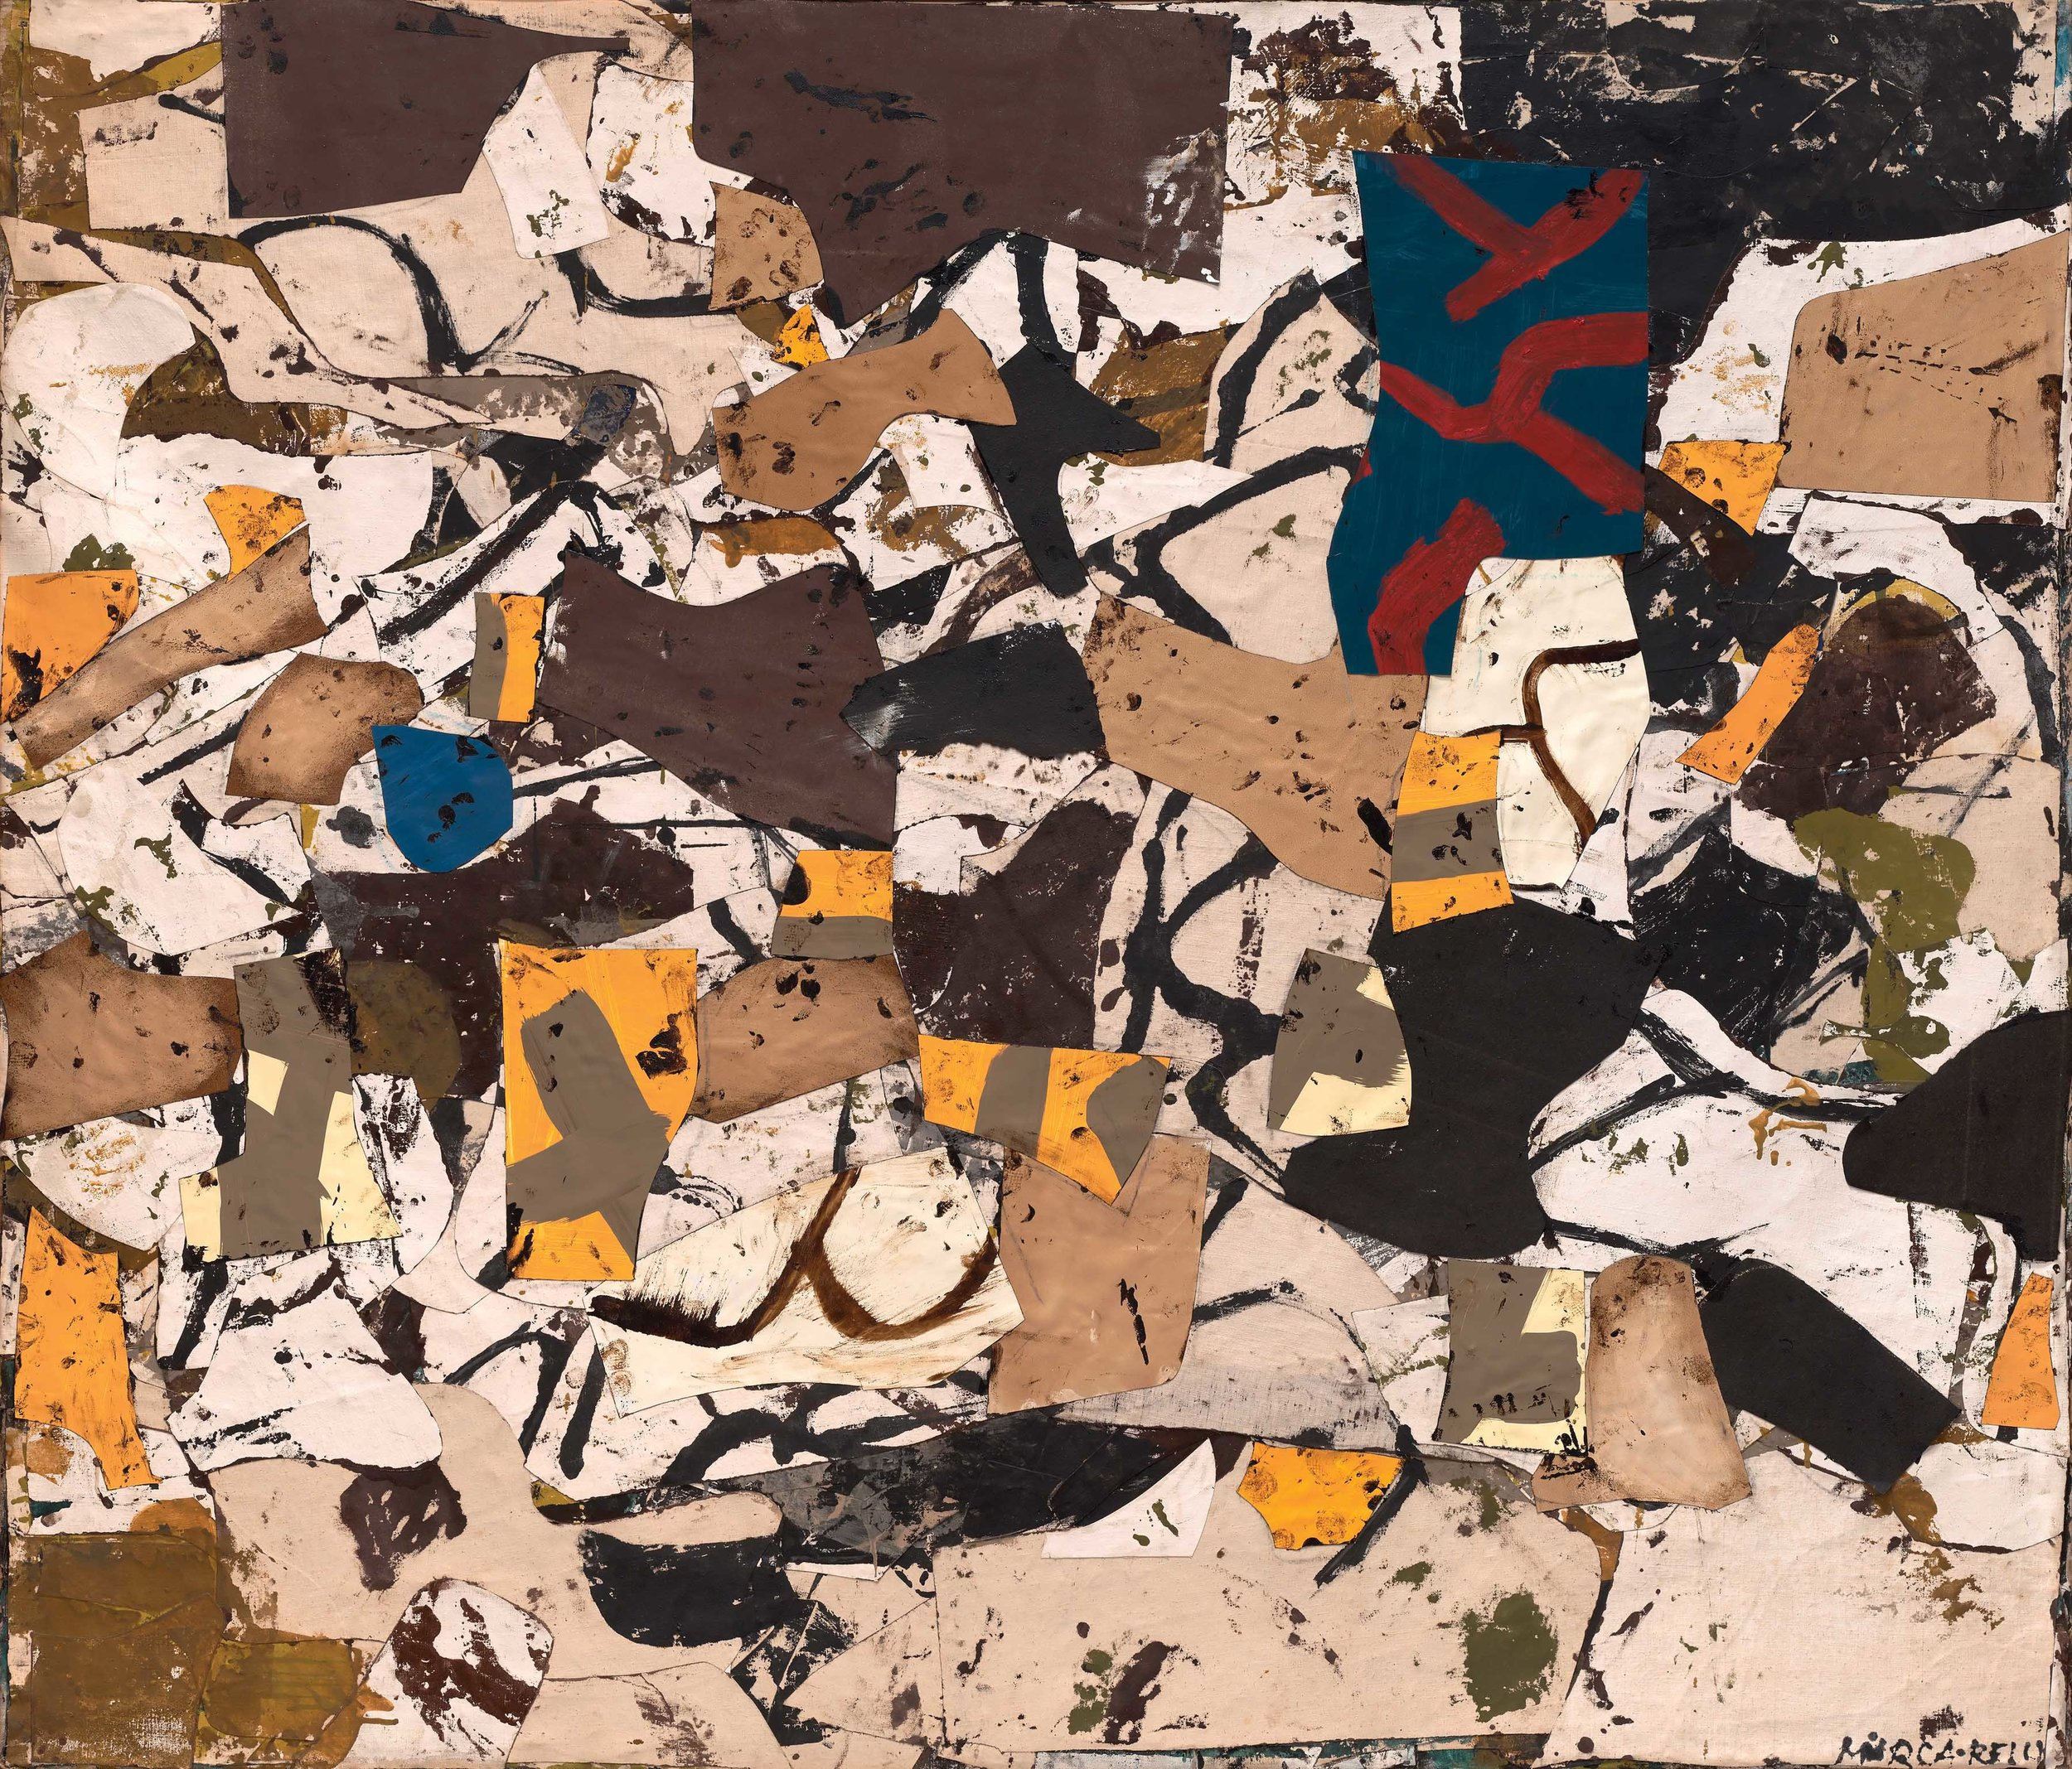 Conrad Marca-Relli – L-R-8-57, 55.5 x 64.75 inches, 1957, painted collage